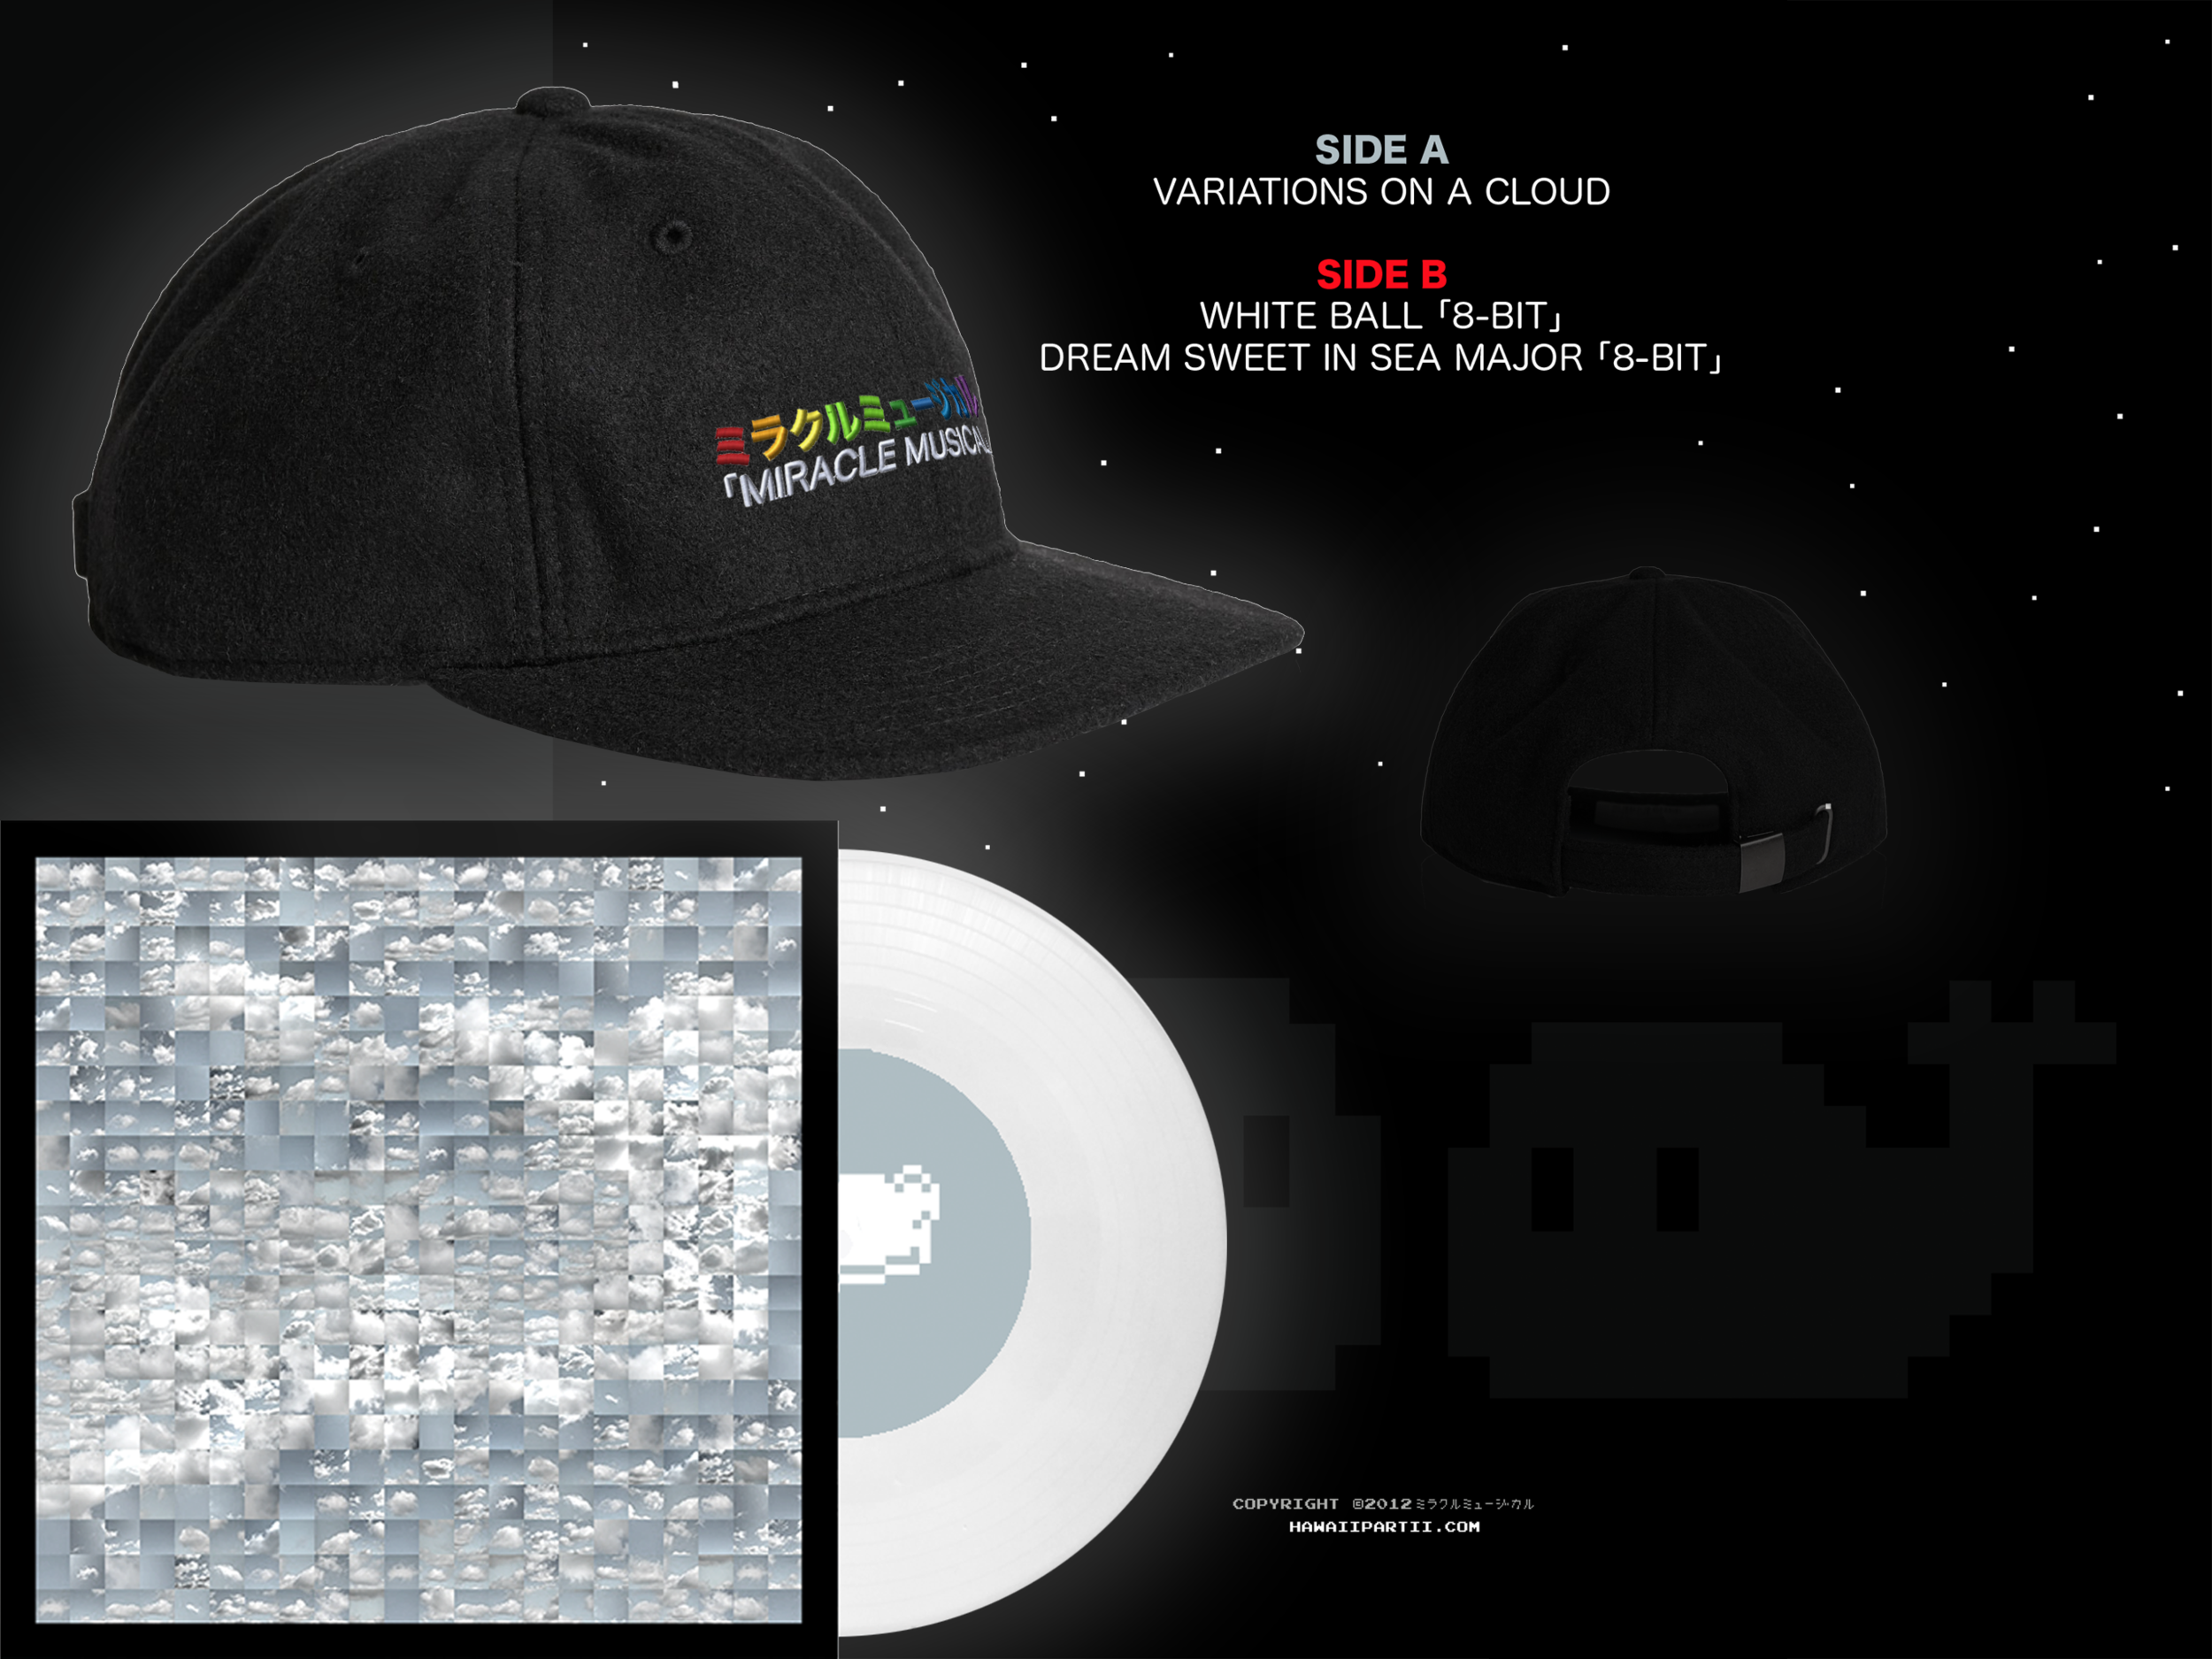 """Variations on a Cloud"" White Vinyl 7"" Single 45rpm (Includes Limited Edition Embroidered Wool Hat) –   Preorder"